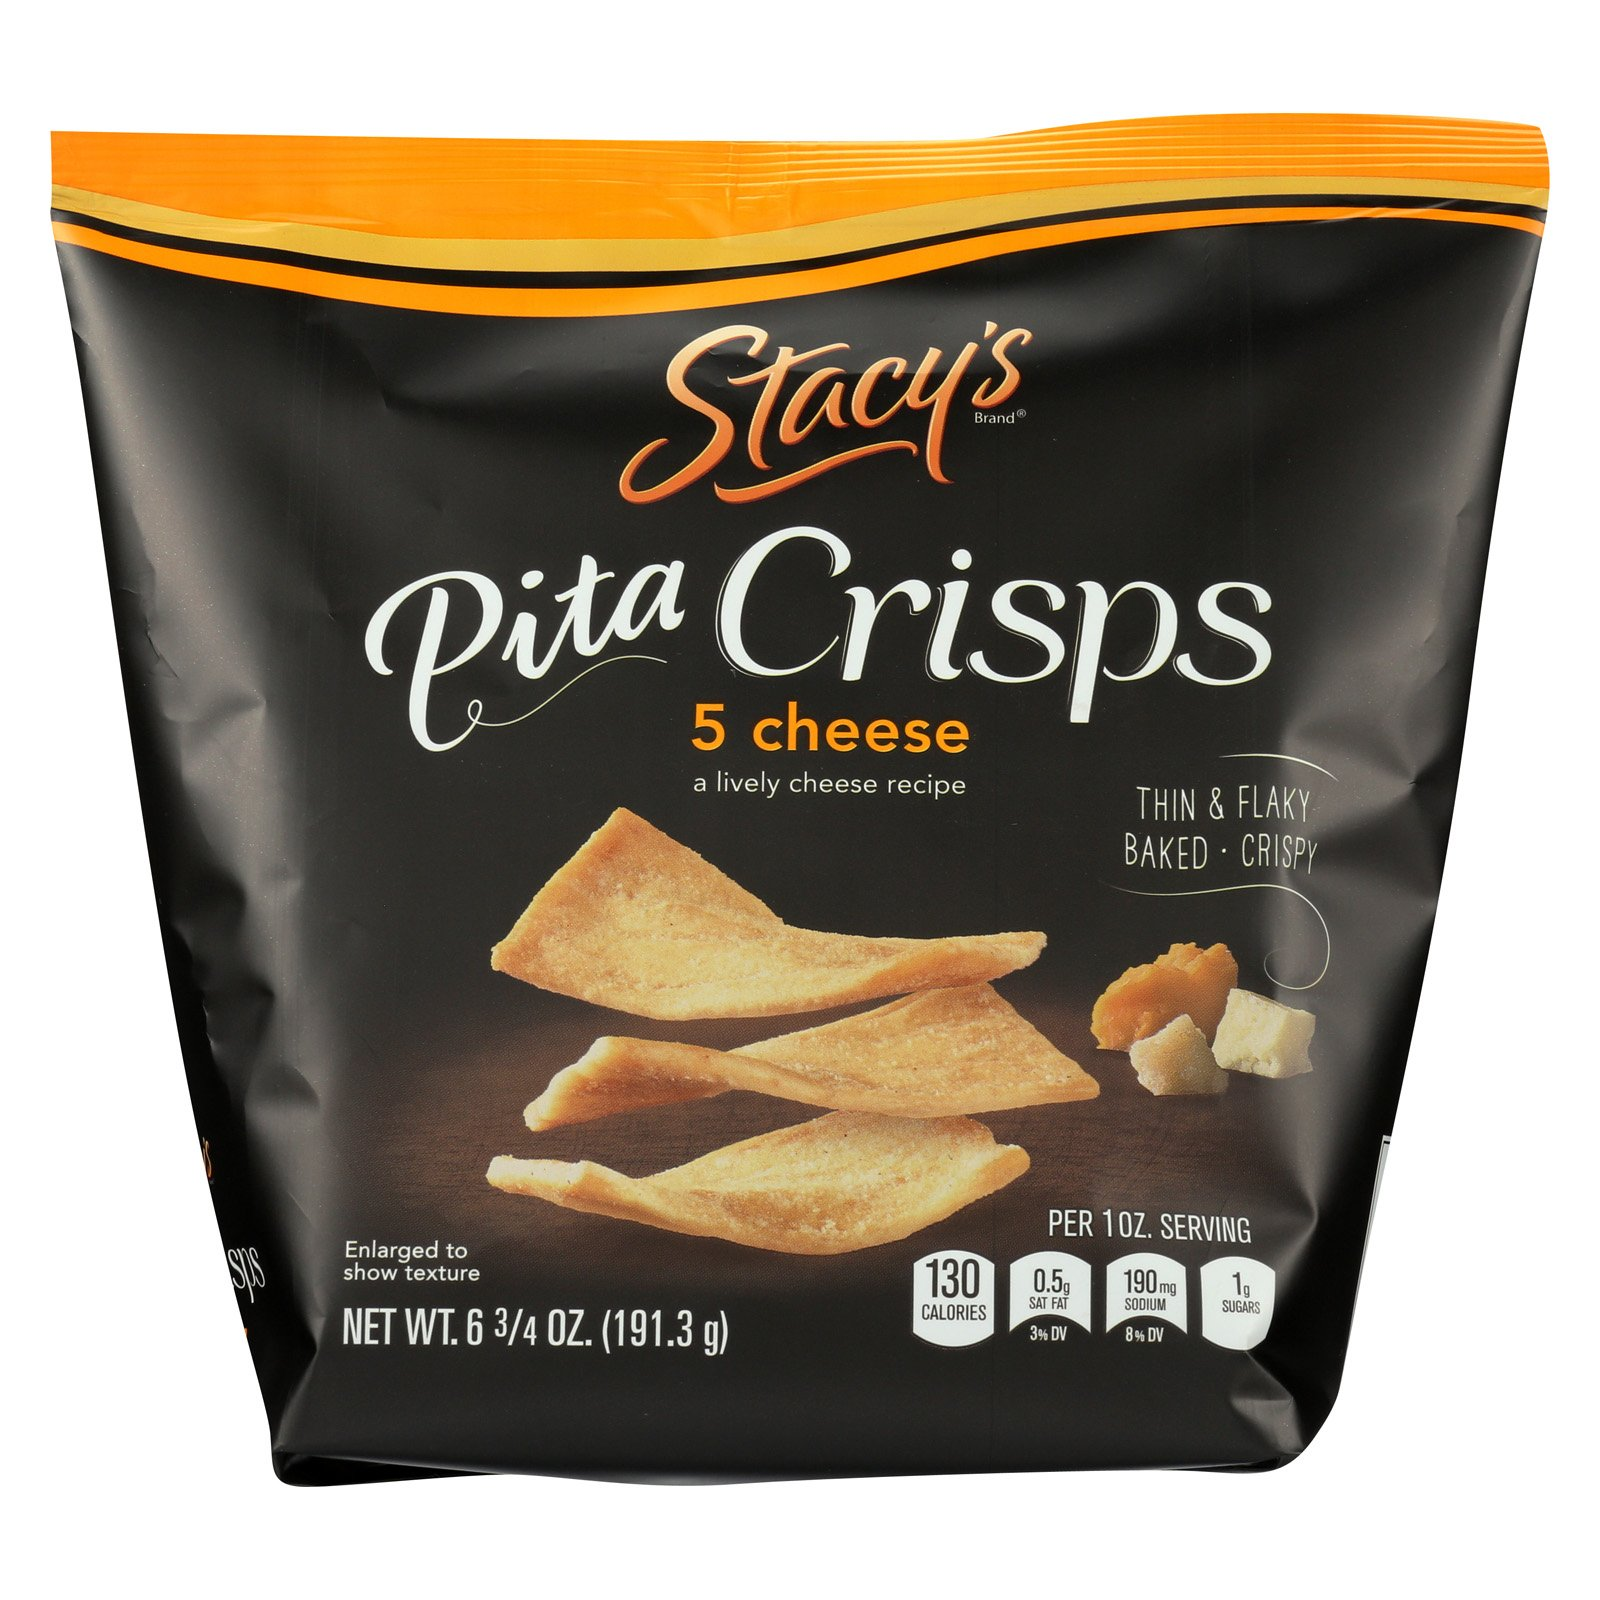 Stacy's Pita Chips 5 Cheese Pita Crisps - Cheese - Case of 8-6.75 oz.